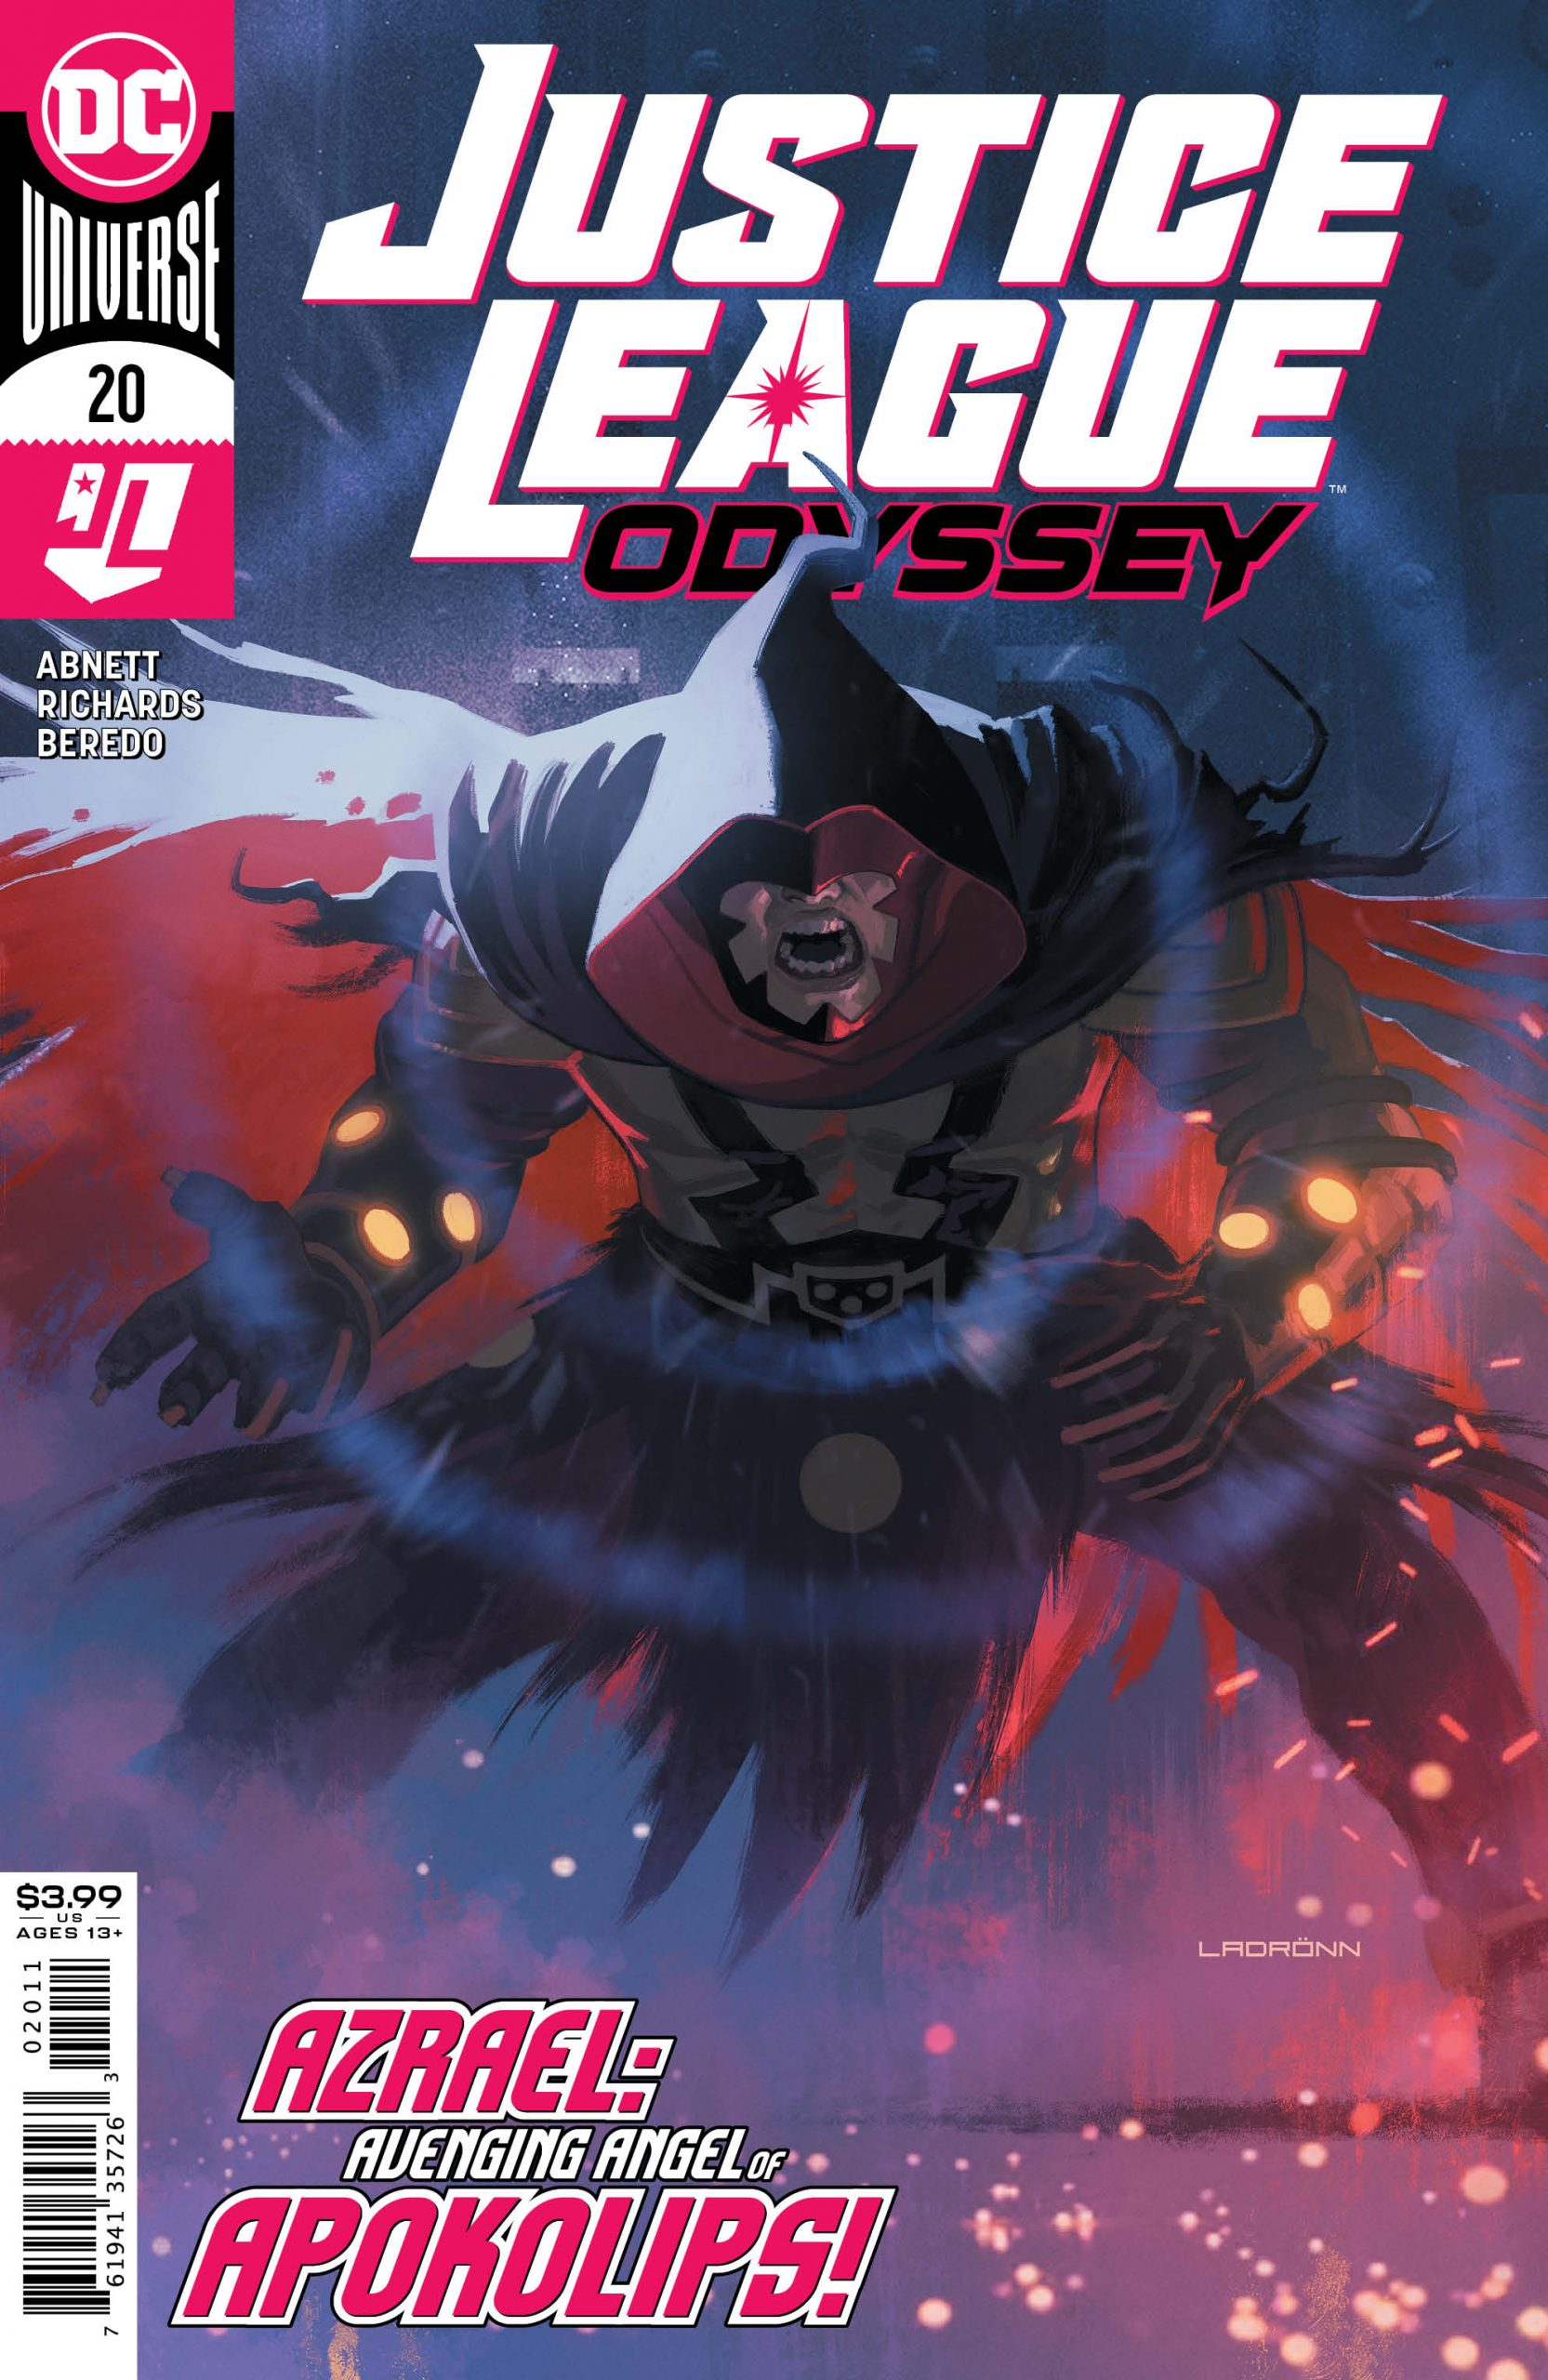 Justice League Odyssey #20 Cover